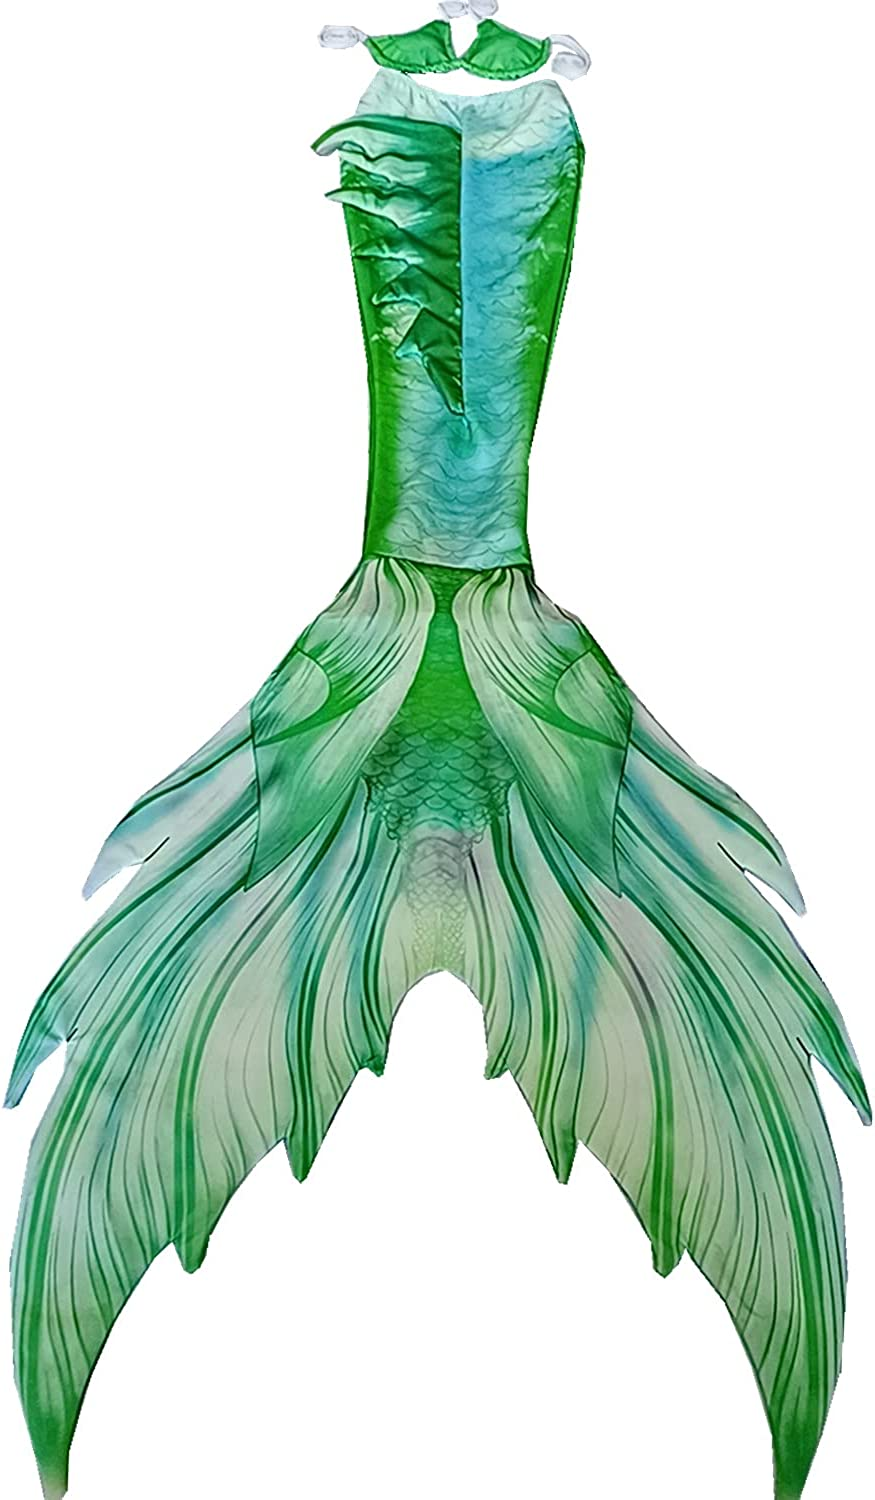 Max 50% OFF Fabulous 5% OFF Mermaid Tail for Adult with Flip Women Men